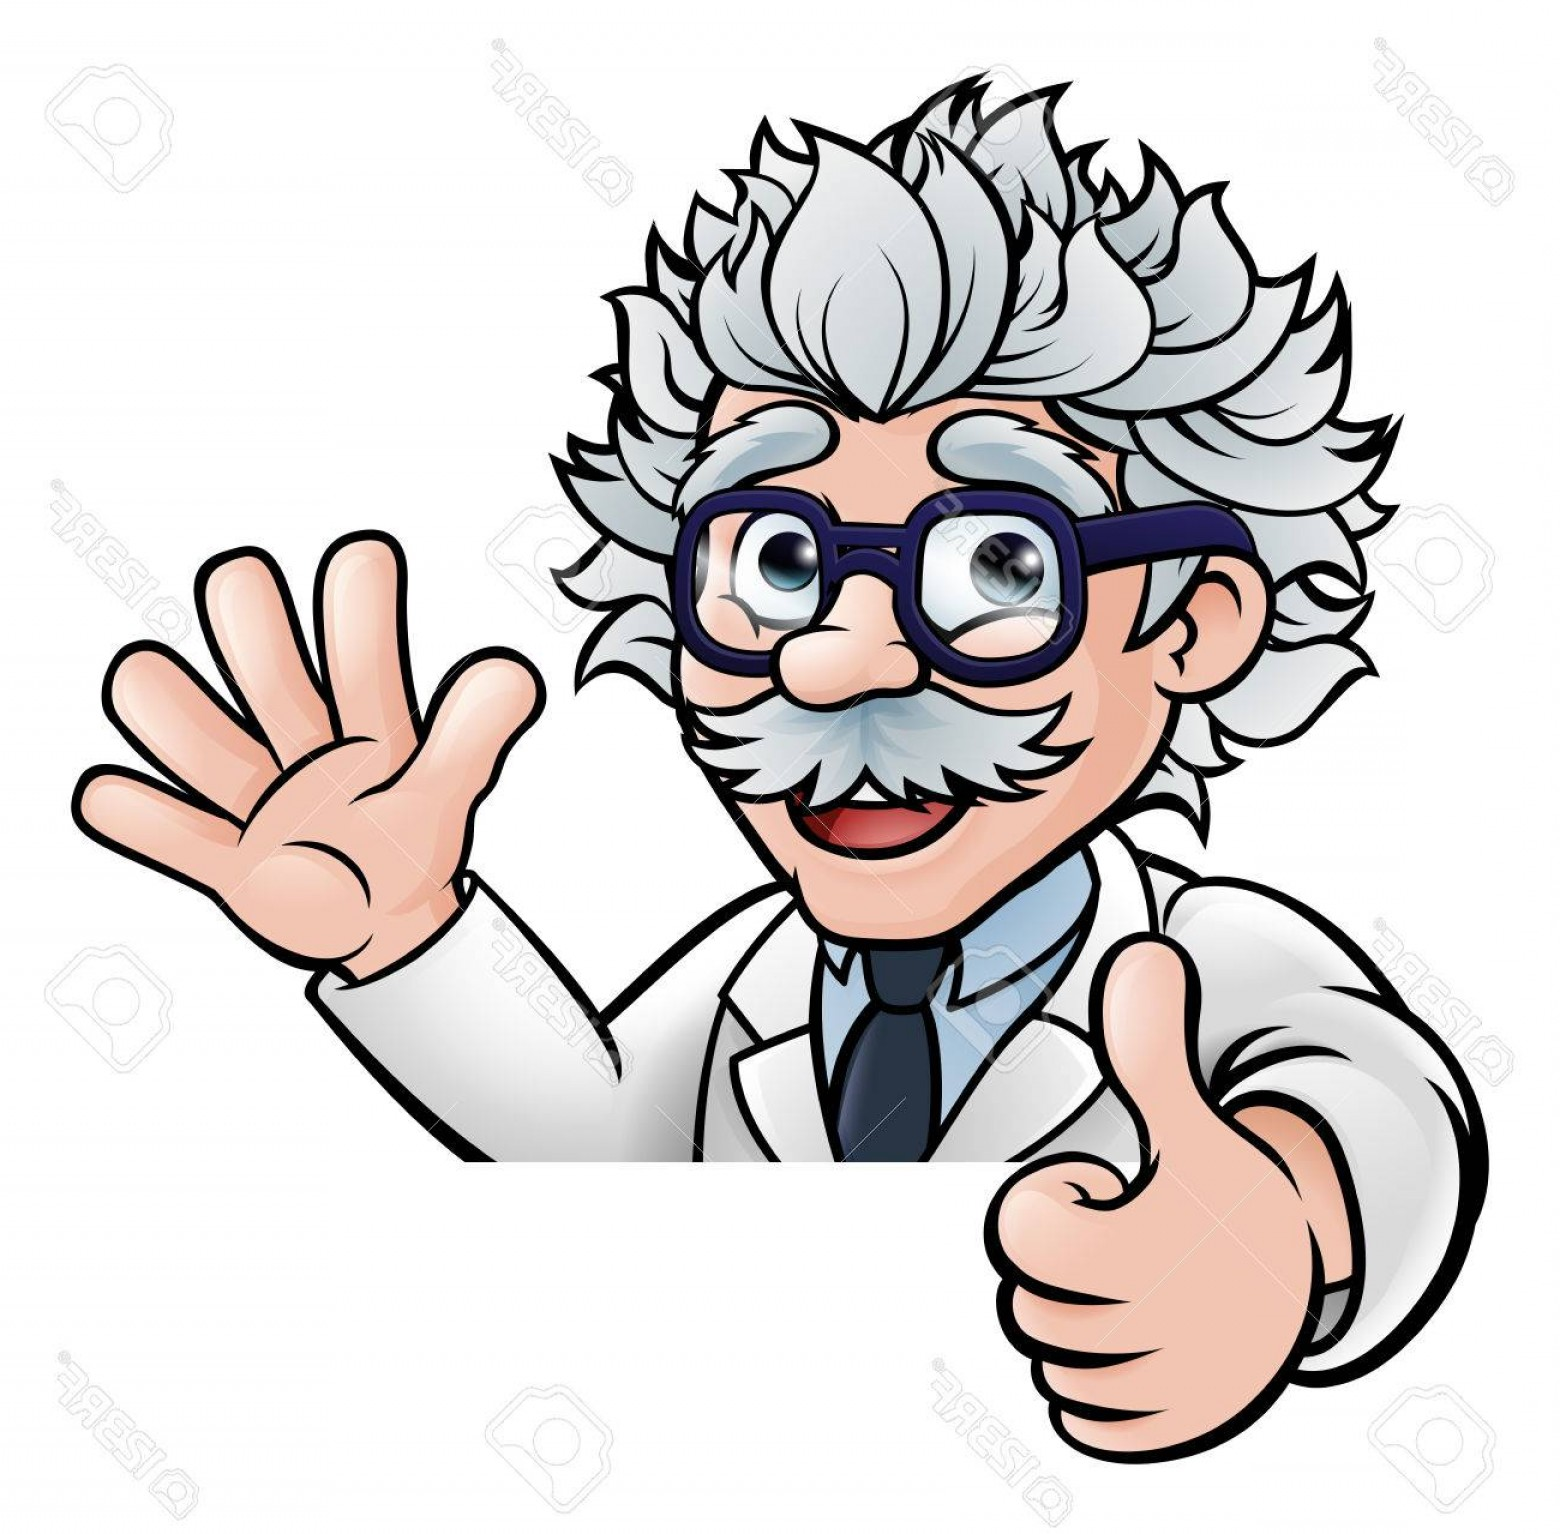 Lab Coat Cartoon Vector: Photostock Vector A Cartoon Scientist Professor Wearing Lab White Coat Waving Above Sign And Giving A Thumbs Up